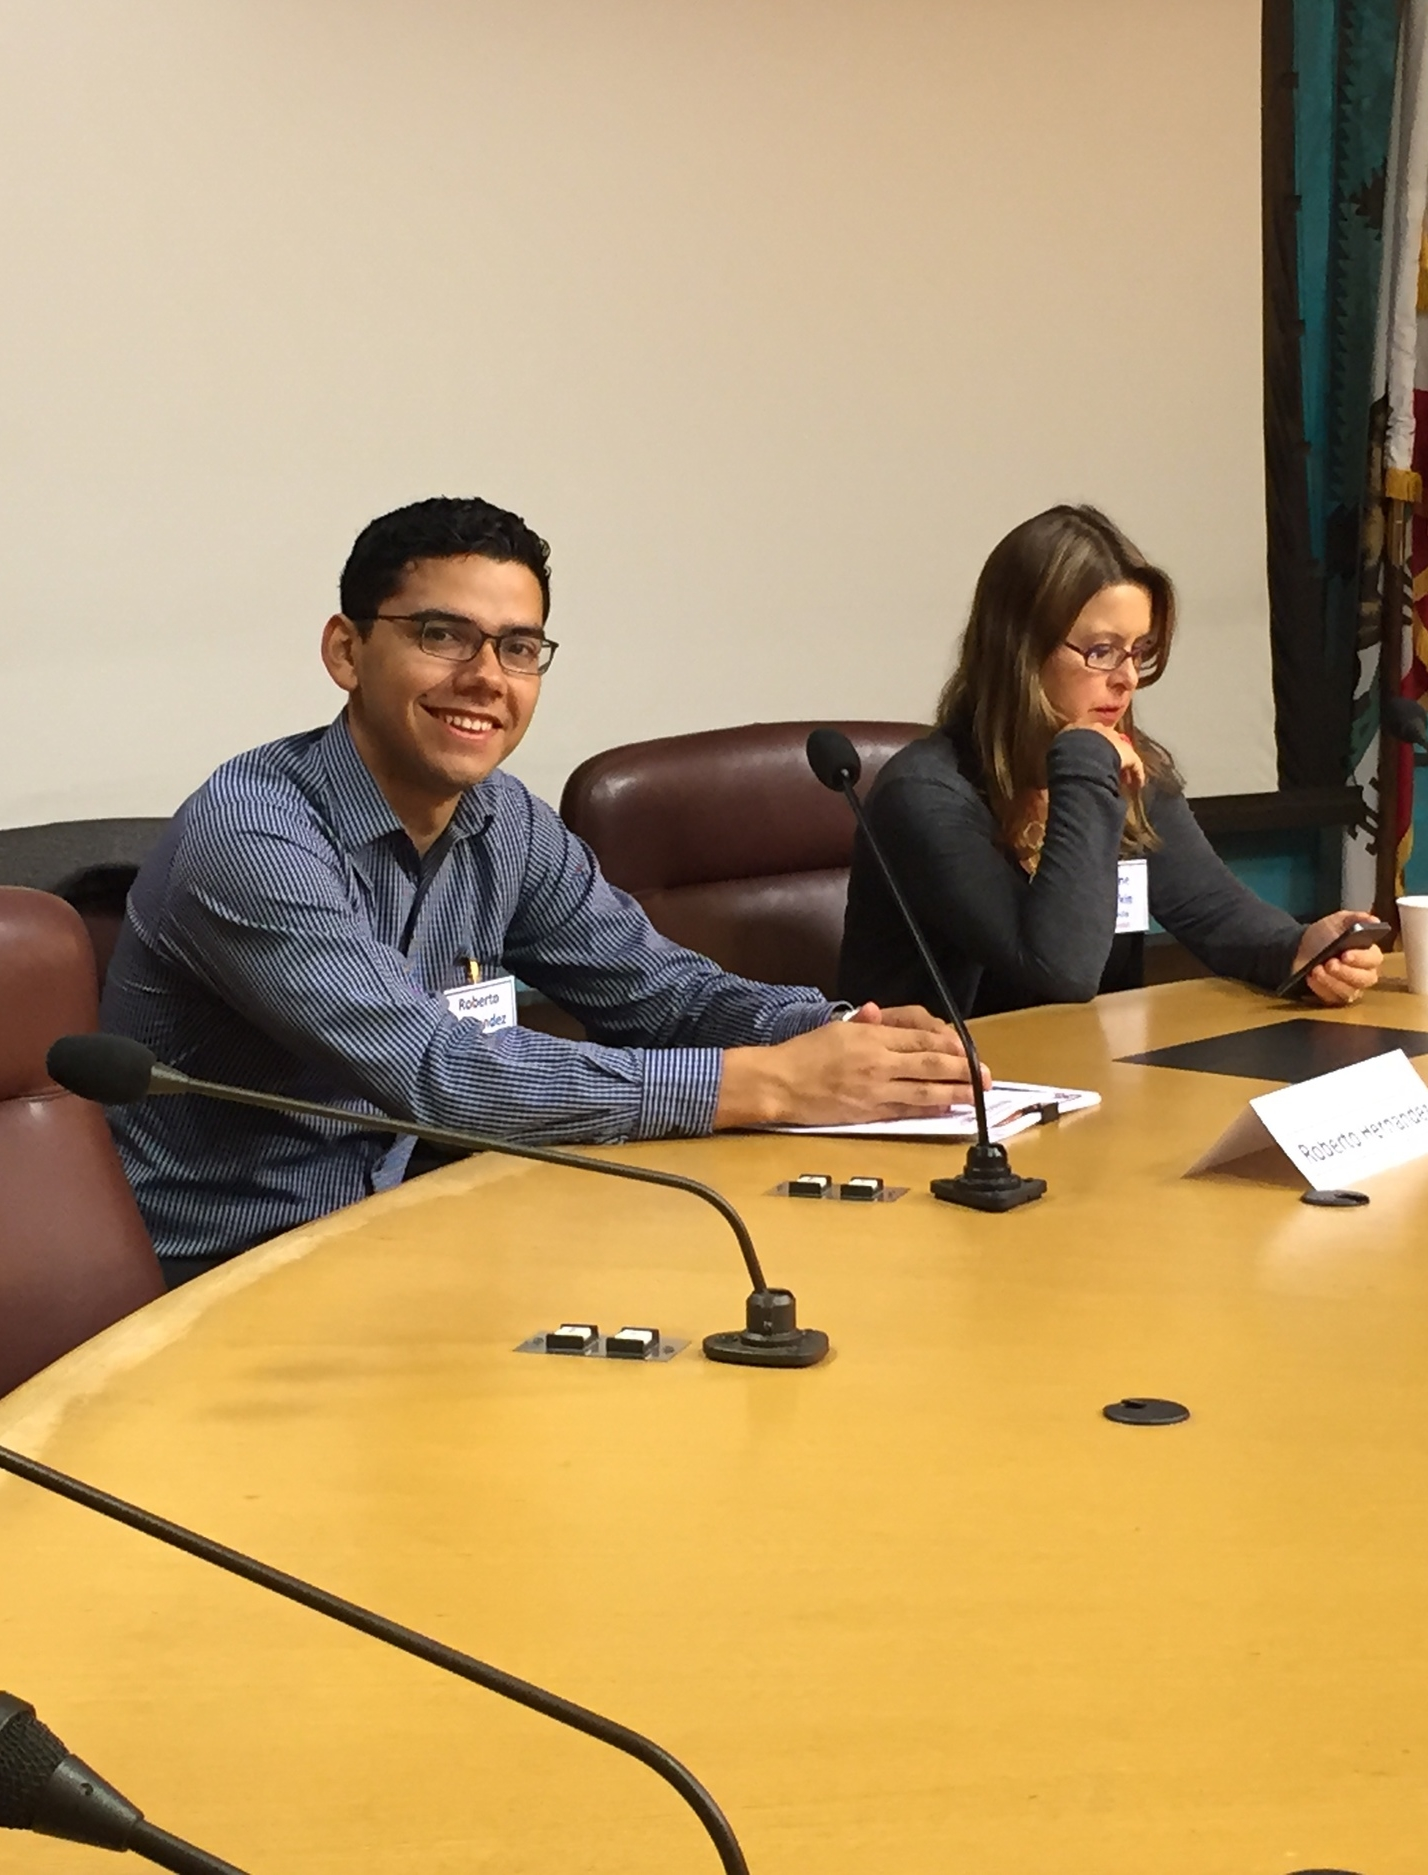 Working Solutions Business Lending Officer Roberto Hernandez at Small Business Week 2015. Meet him at the 'Latino Entrepreneurs: their Visions and Journeys' event on Tuesday evening